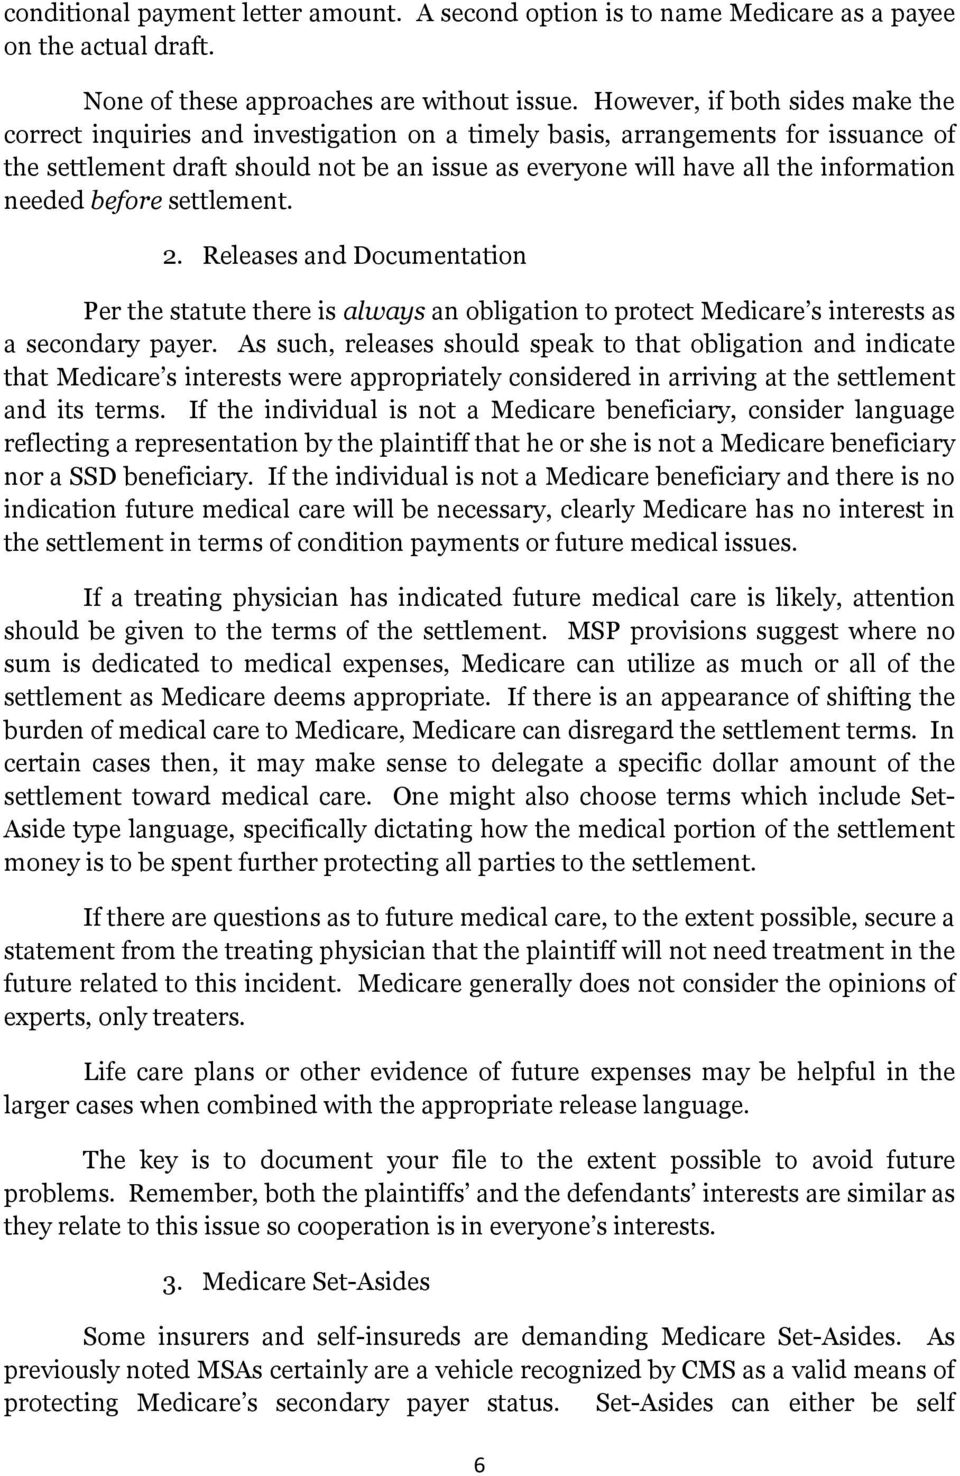 information needed before settlement. 2. Releases and Documentation Per the statute there is always an obligation to protect Medicare s interests as a secondary payer.